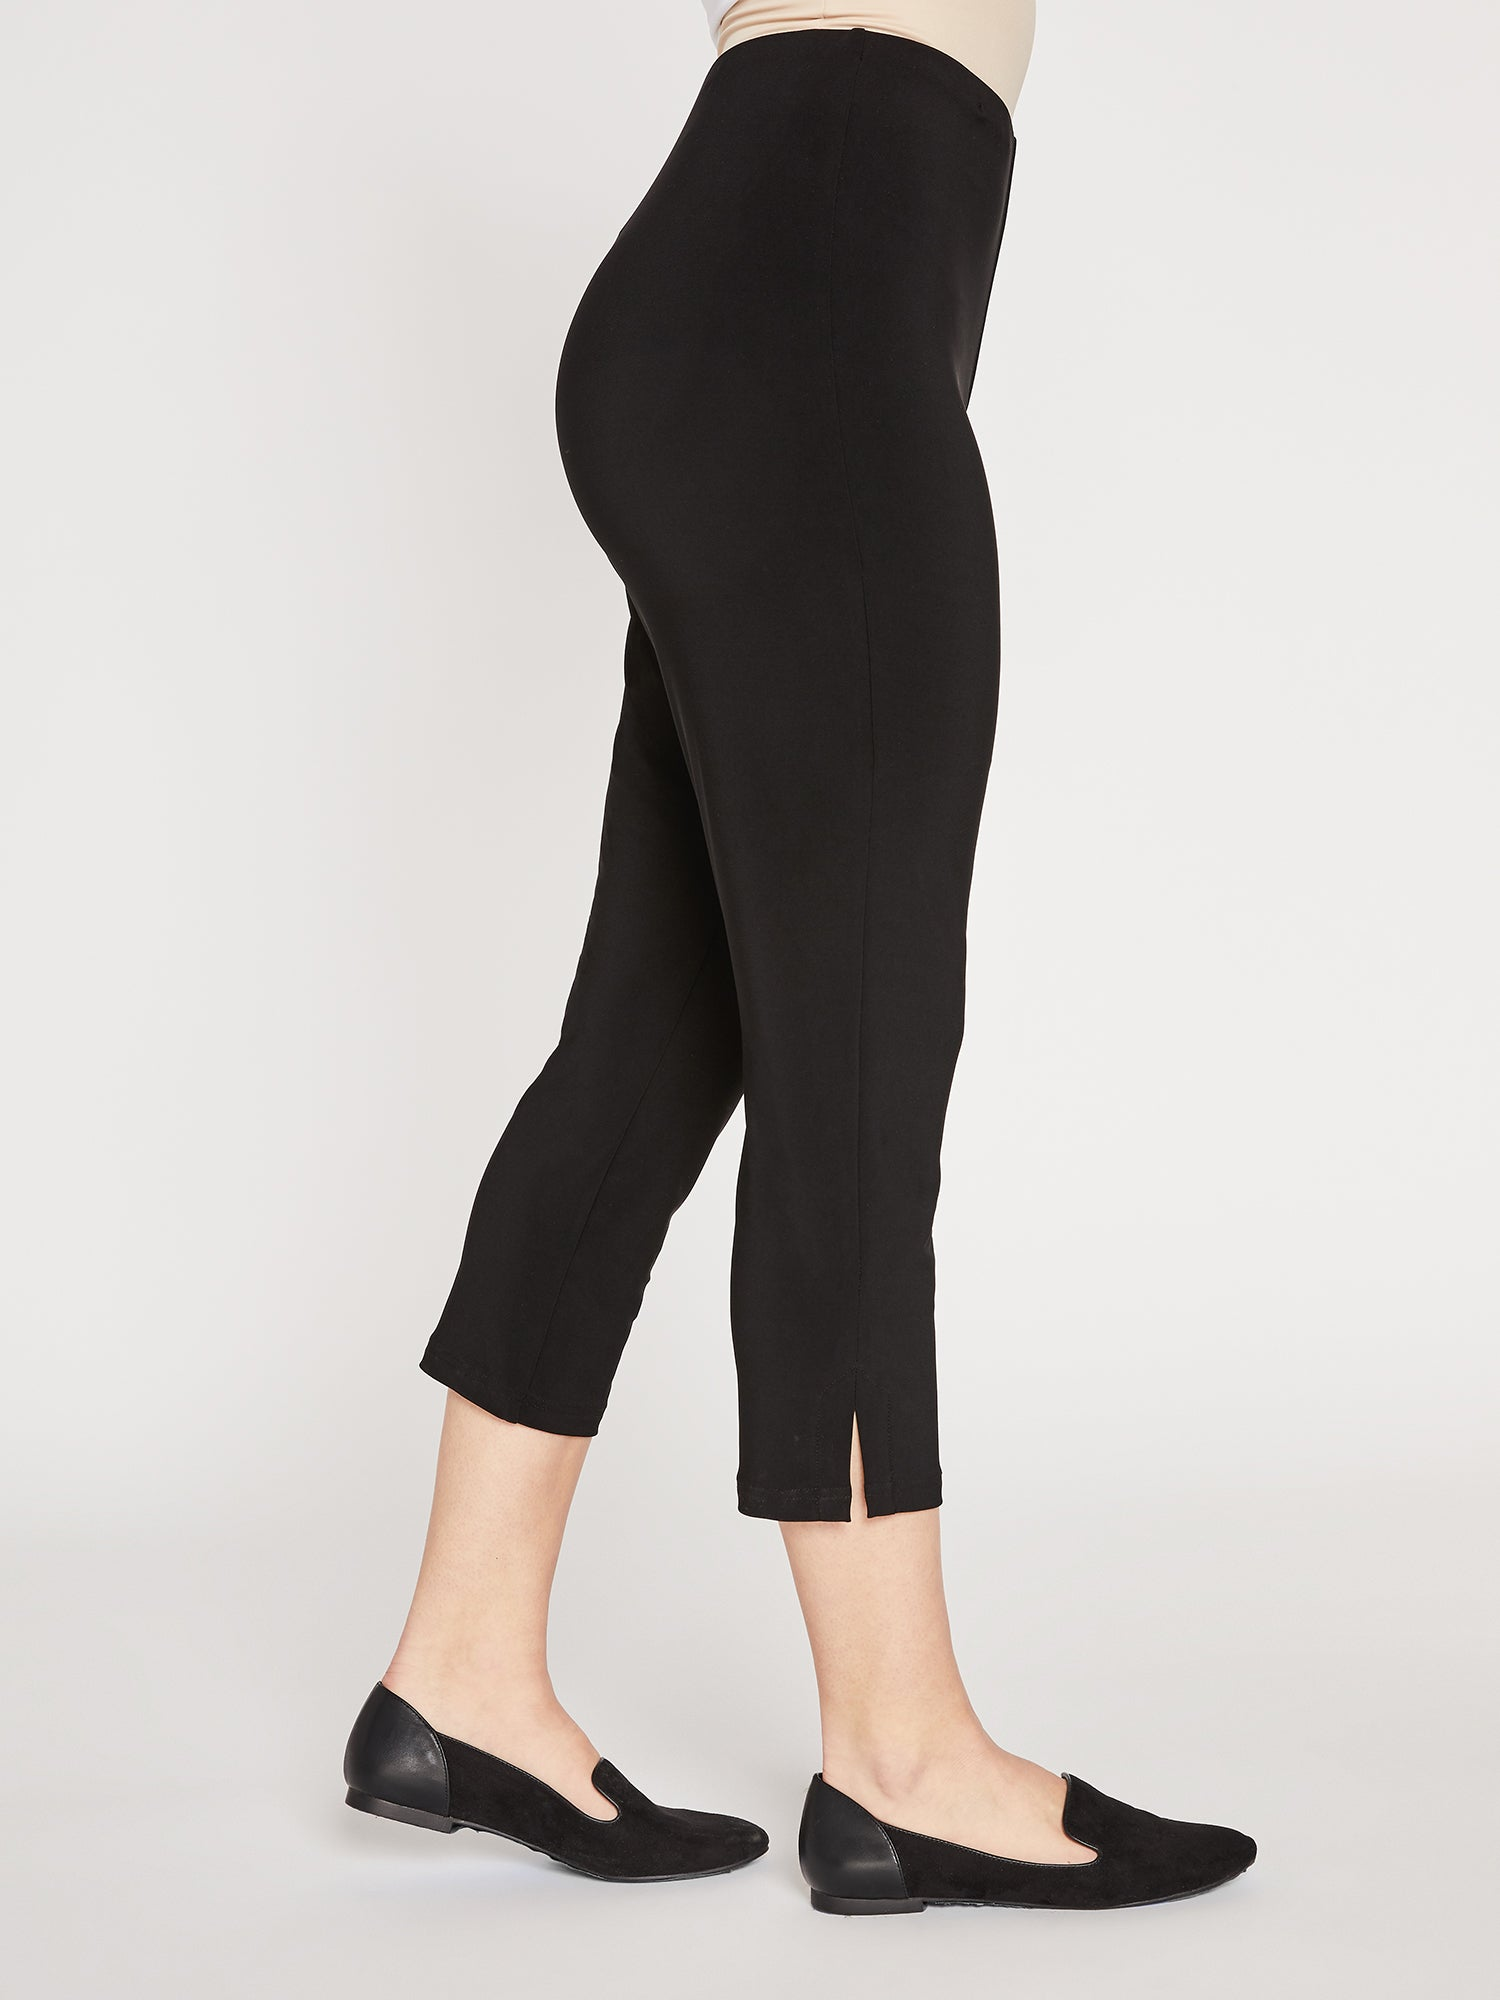 Sympli Narrow Pant Short - Black - Statement Boutique